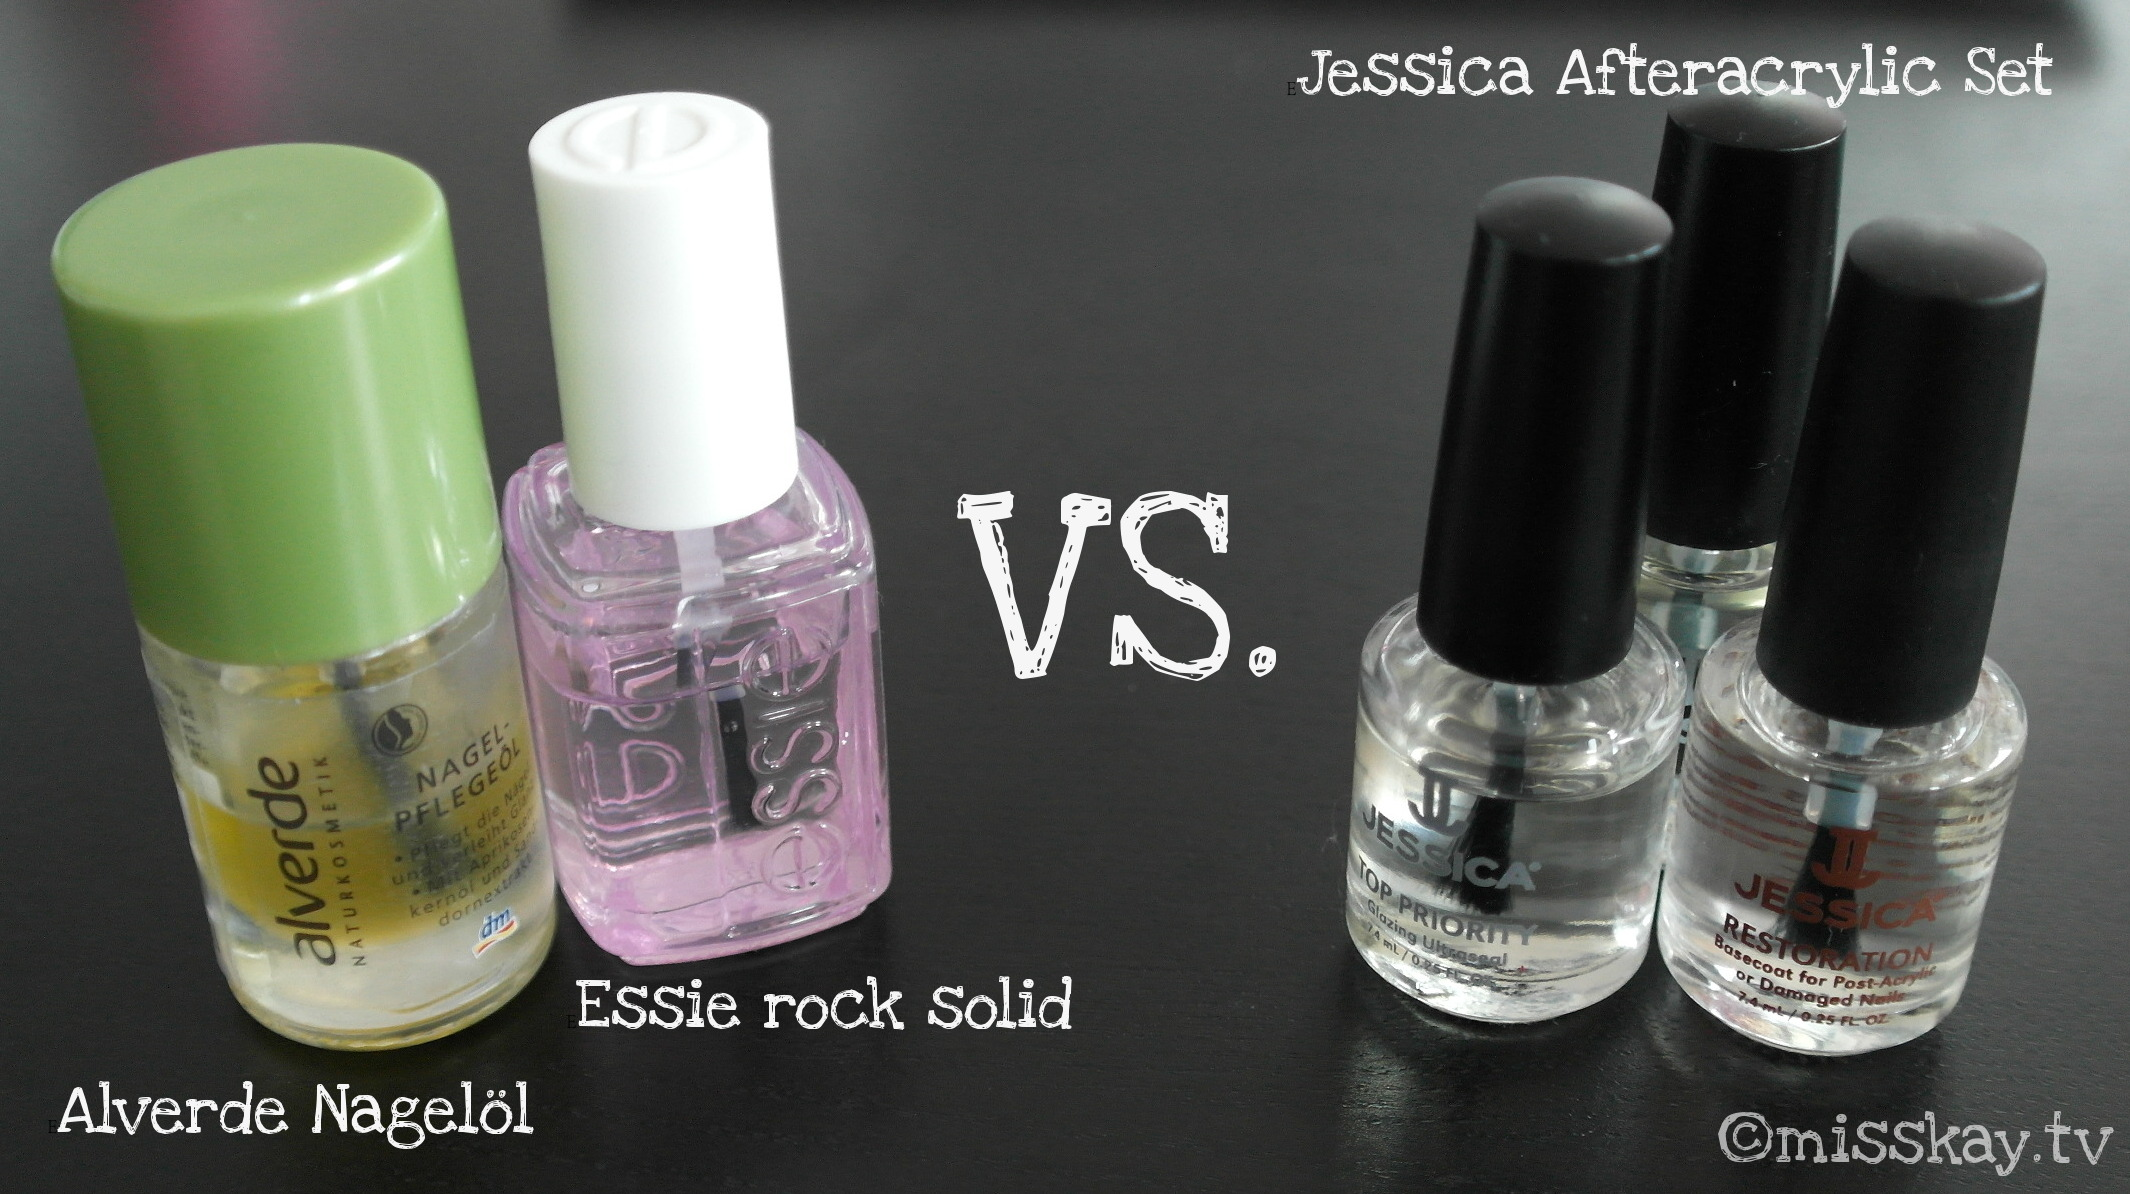 Jessica Afteracrylic Review • misskay.tv